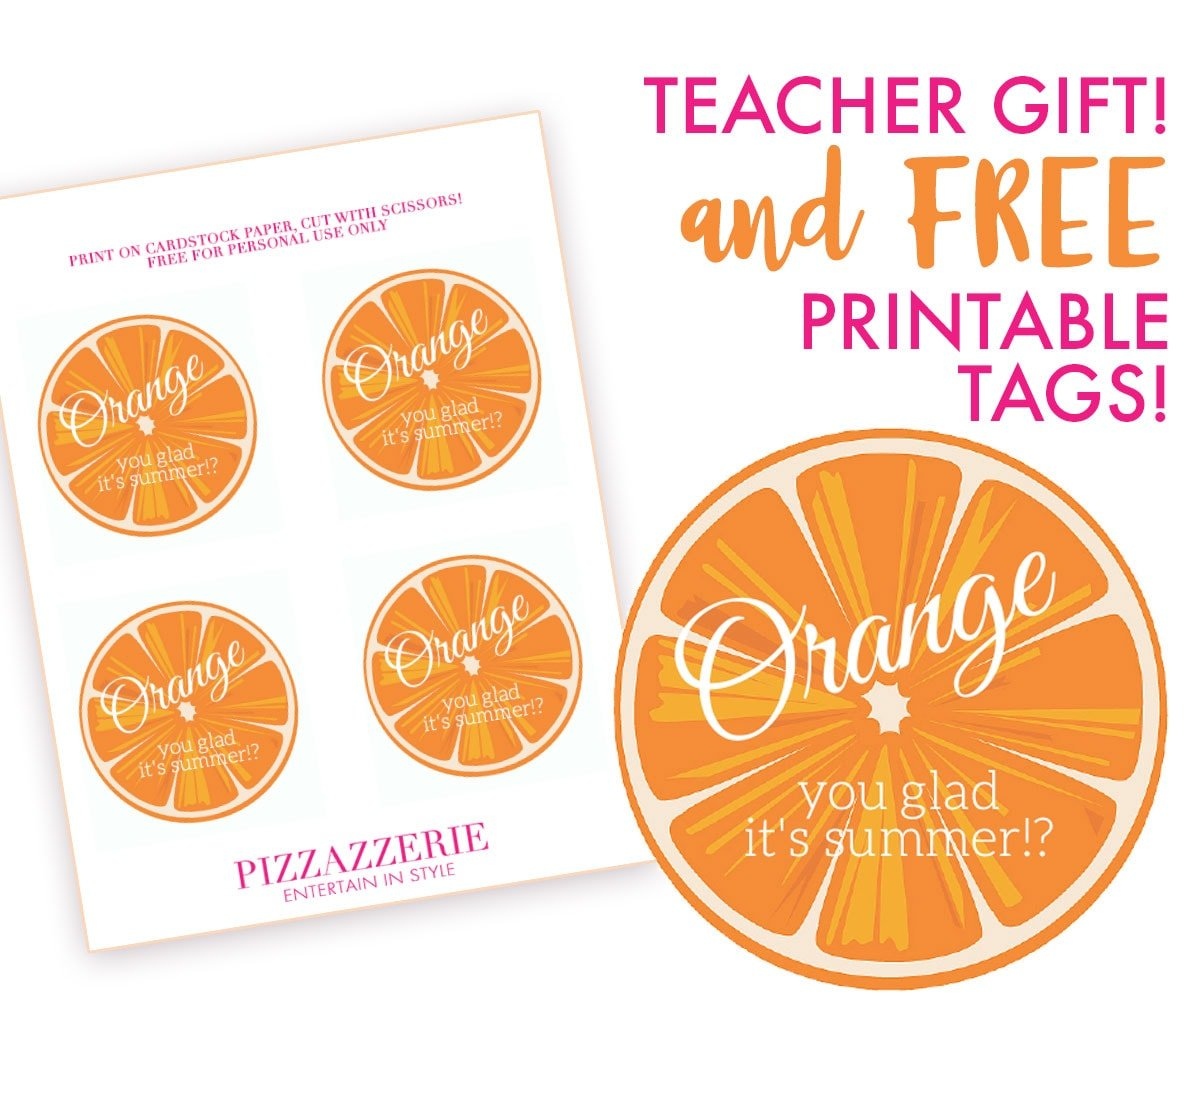 Free Printable Orange You Glad It's Summer Gift Tags!